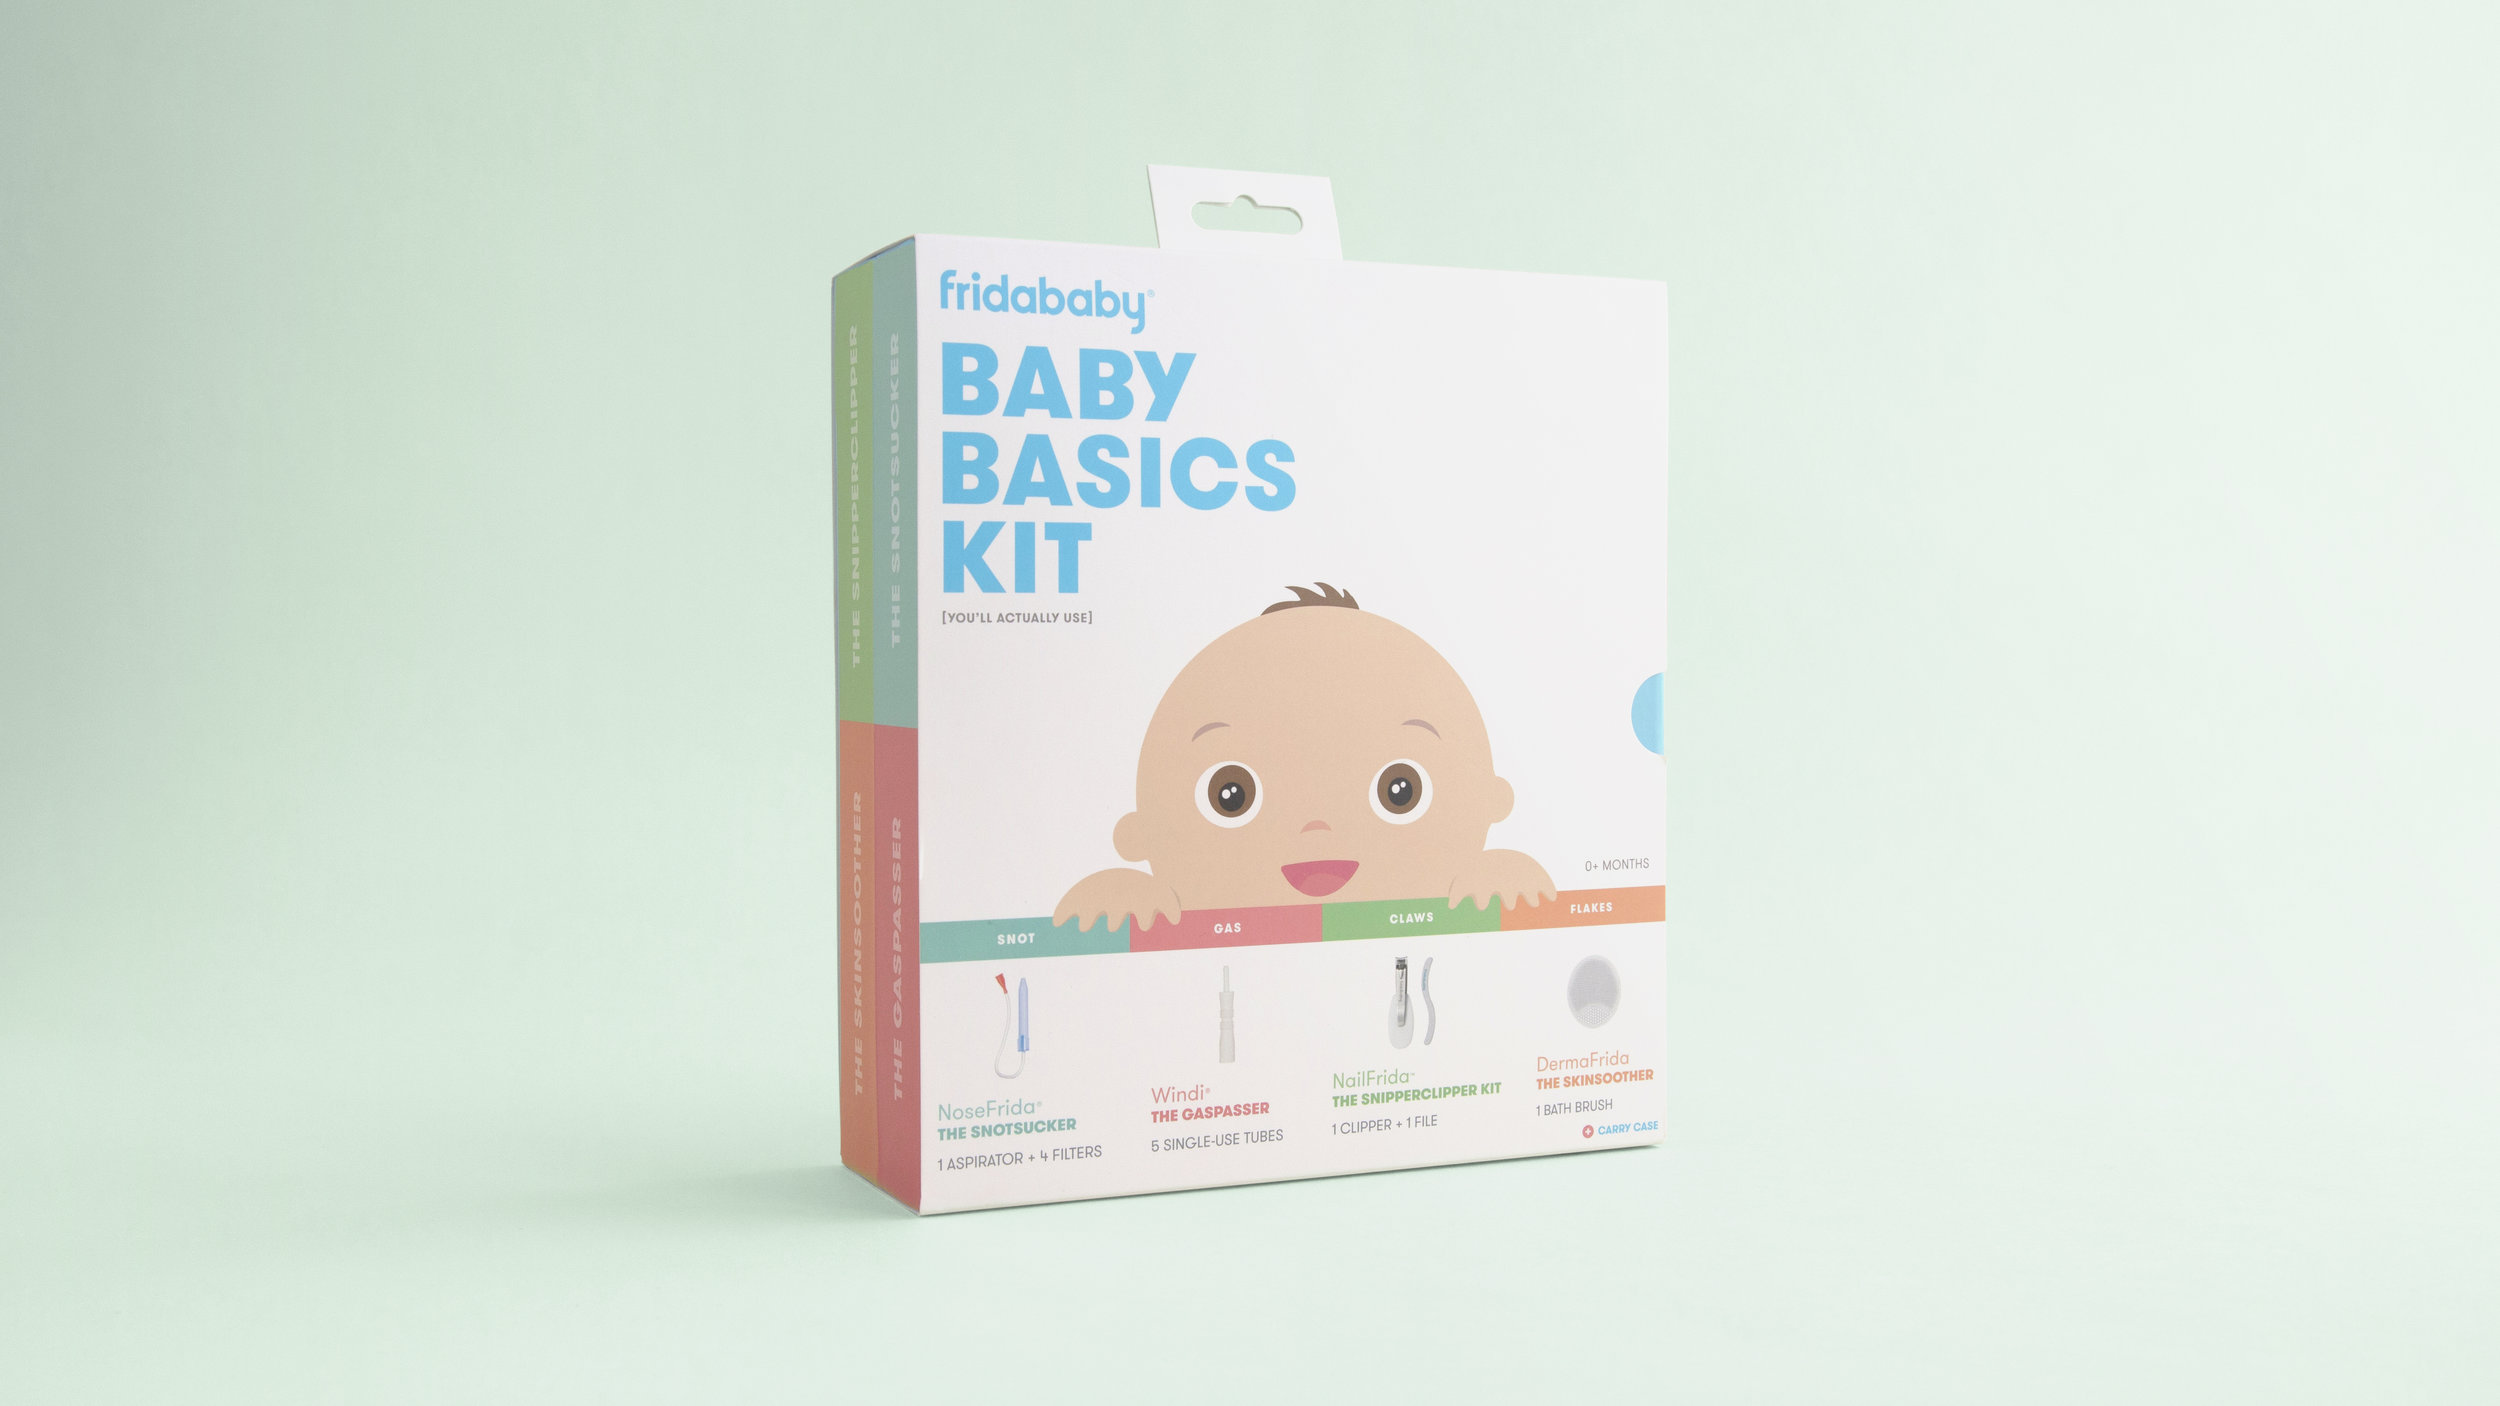 Enlisted_Web_FridaBaby_Packaging_Front.jpg